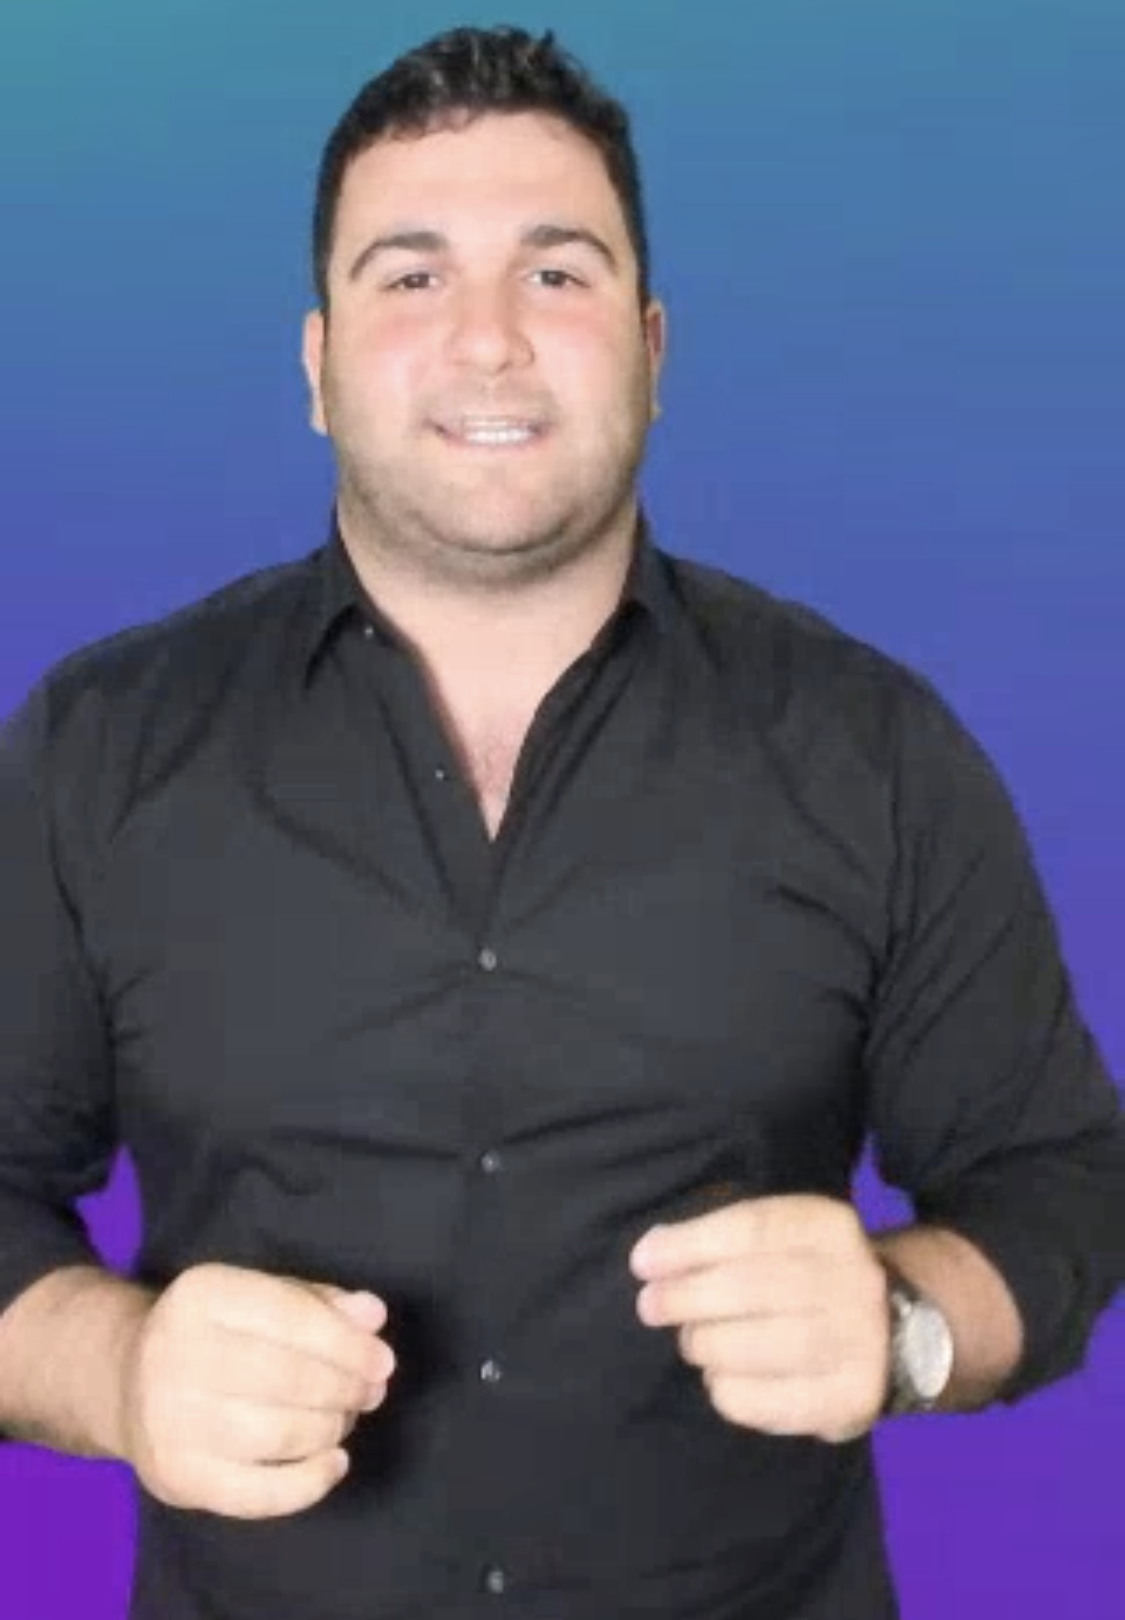 Majority Rules quiz host and cofounder Jonathan Nassimi.